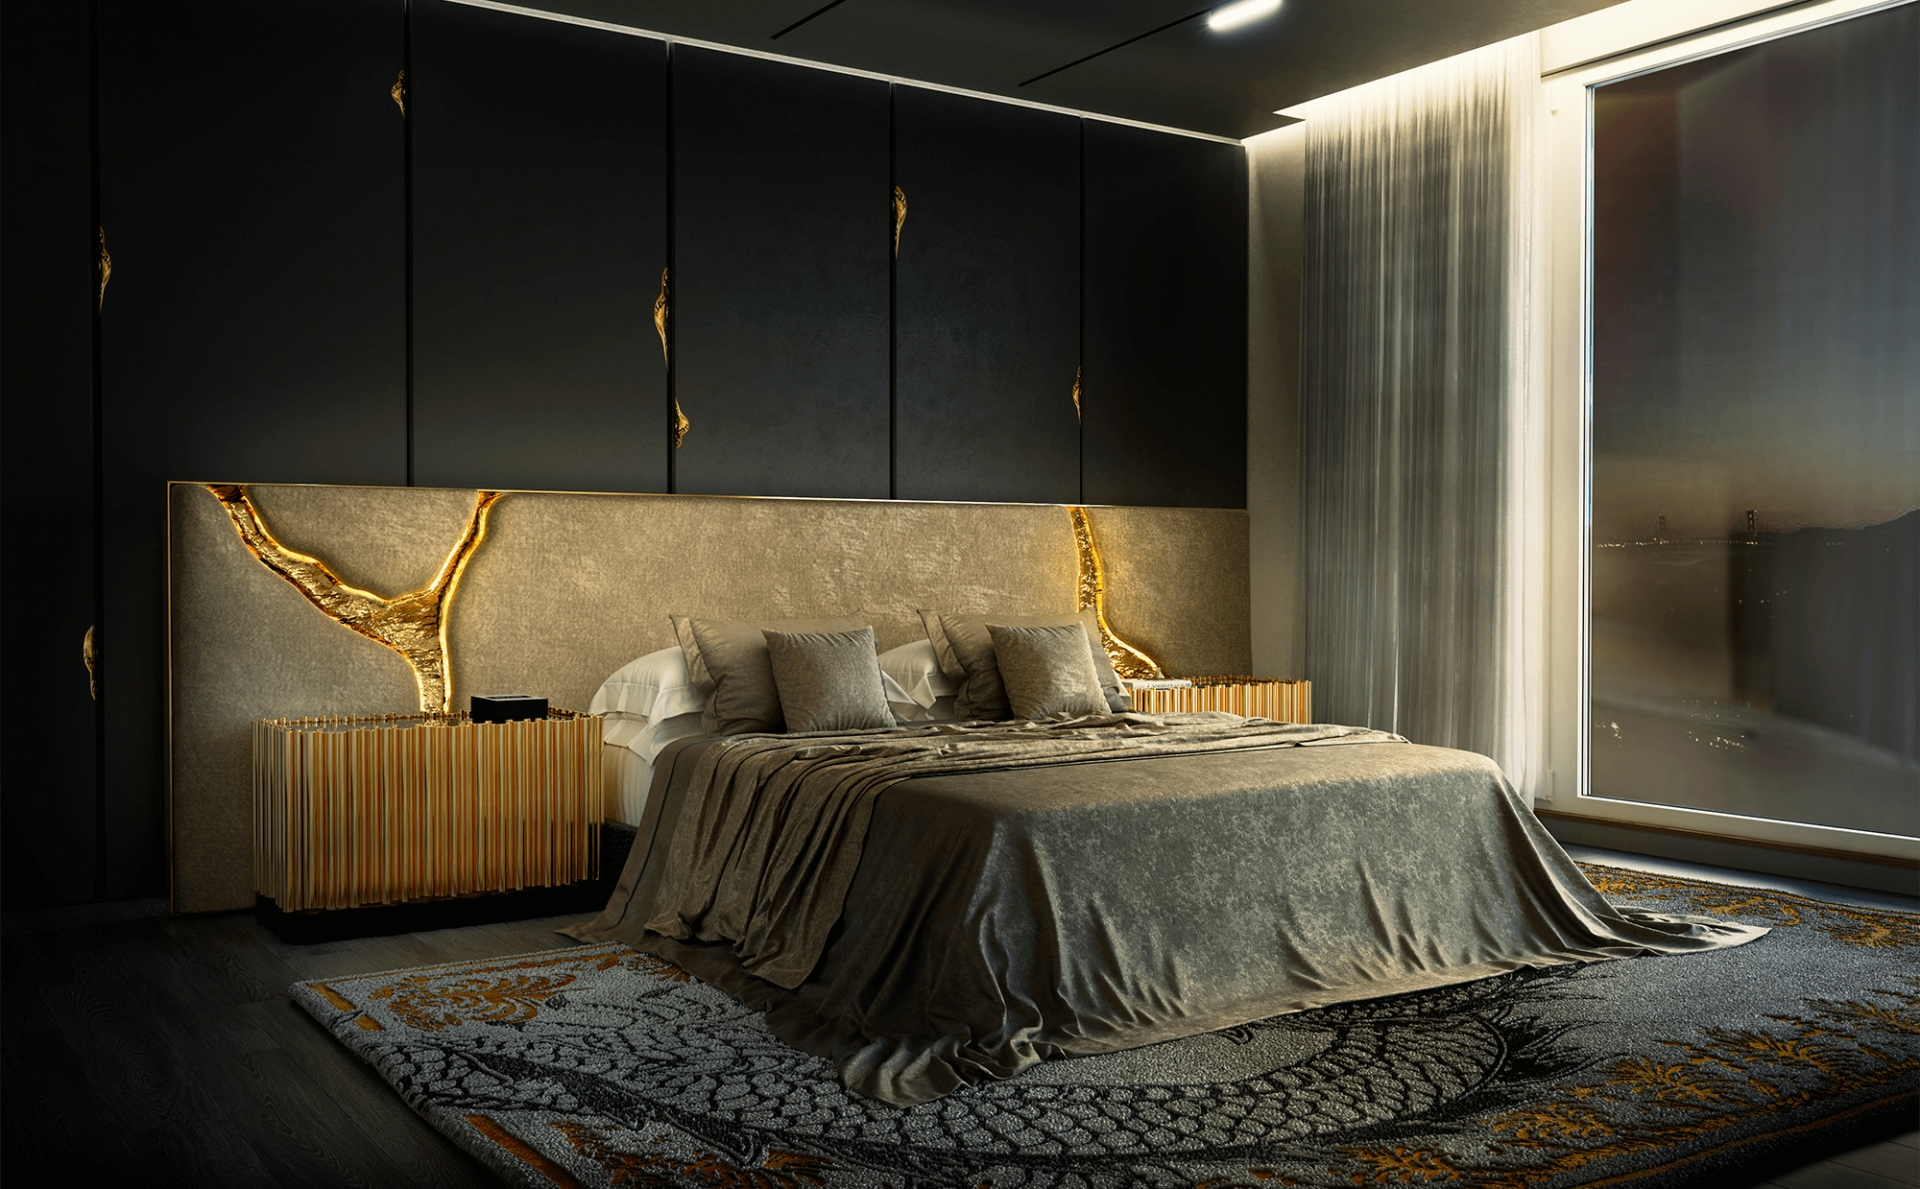 Perfect Bedroom Interior Design Projects For Dubai's Lifestyle bedroom interior design Perfect Bedroom Interior Design Projects For Dubai's Lifestyle a luxury headboard